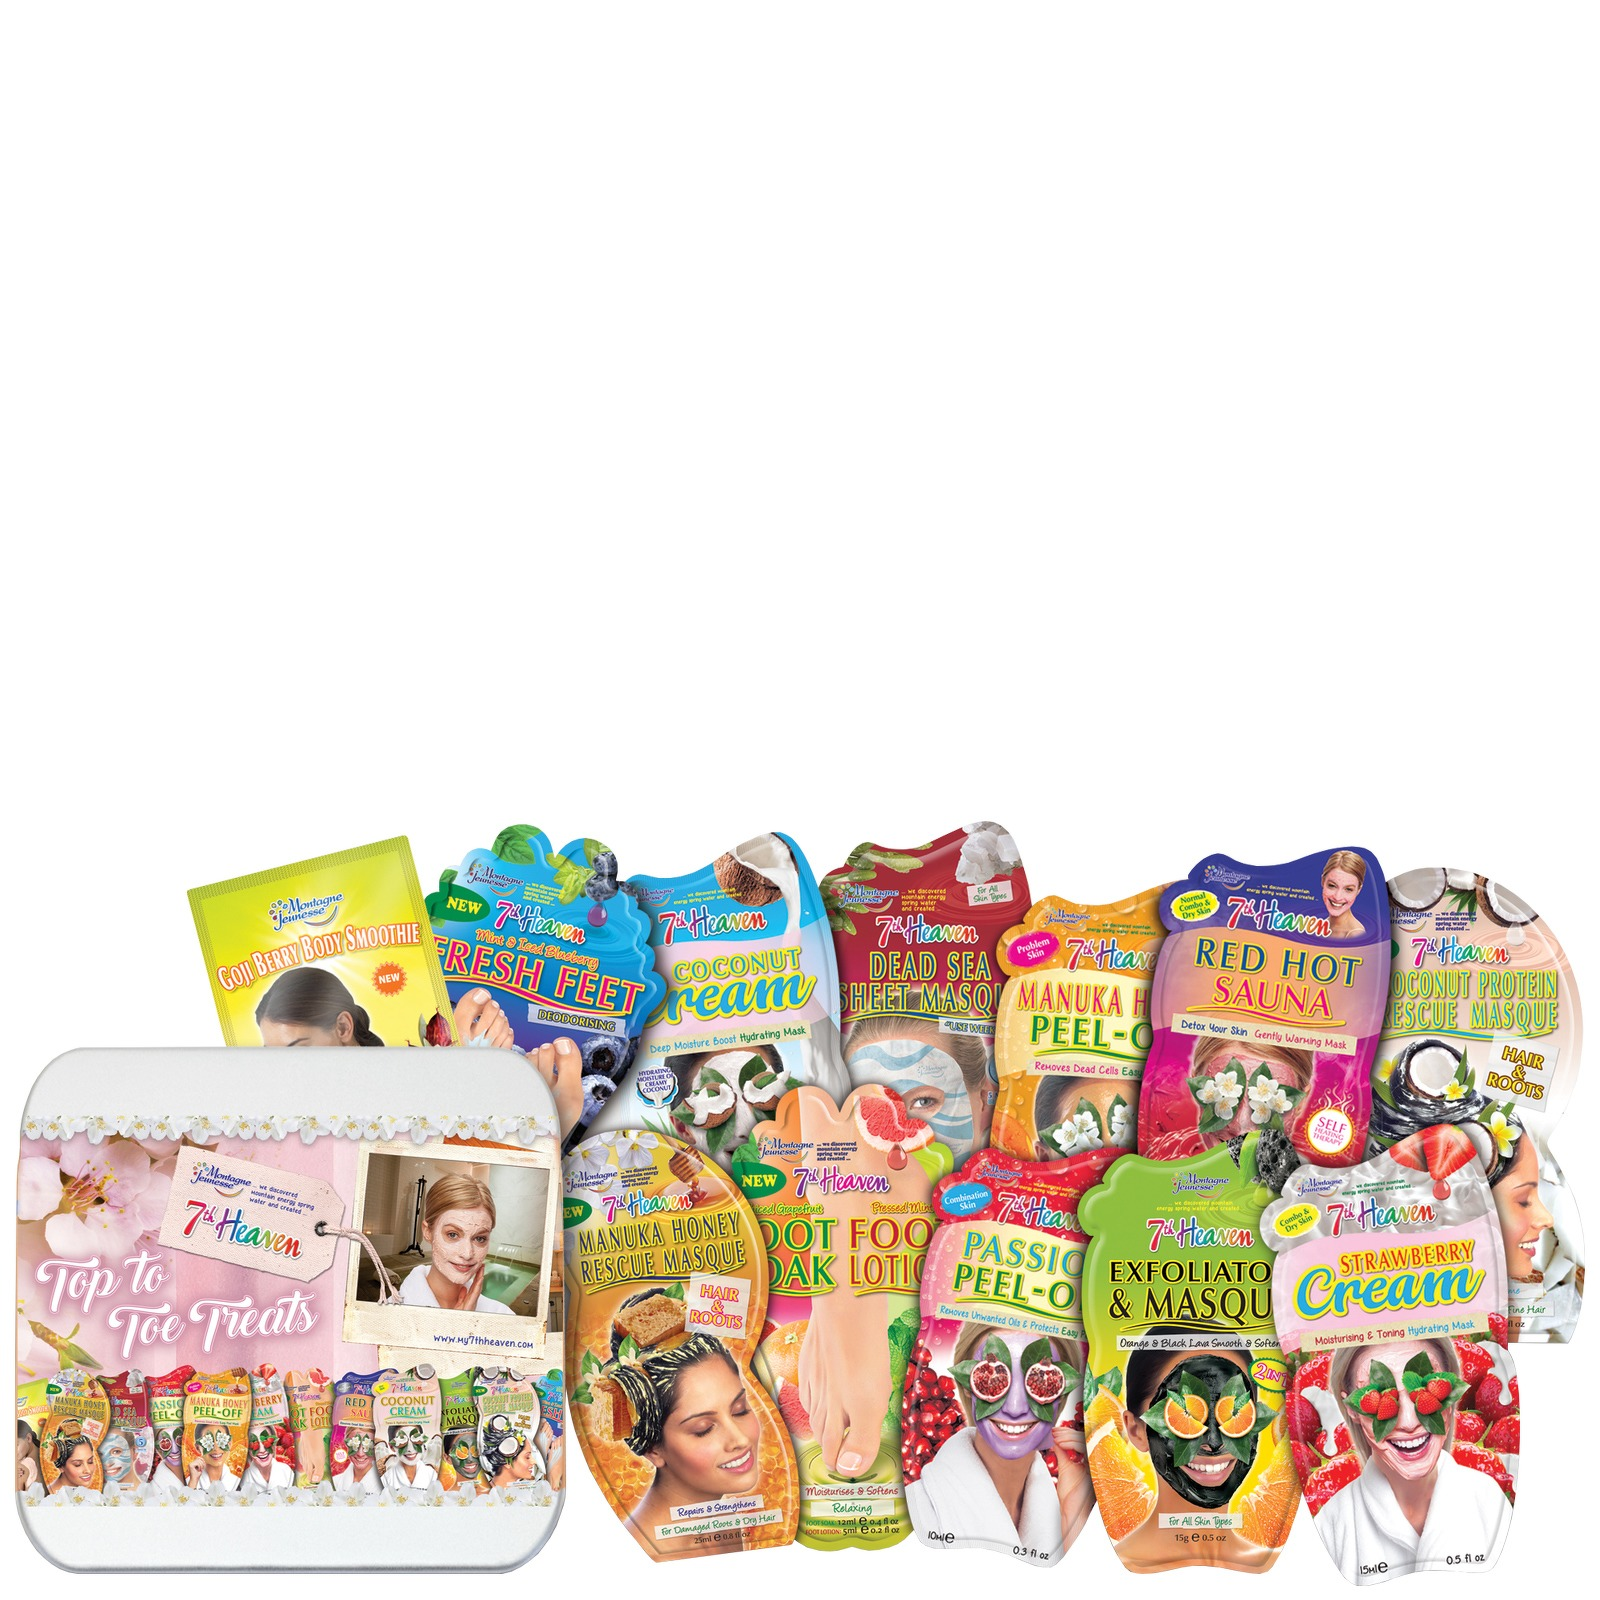 7th Heaven Gift Sets Top to Toe Treats